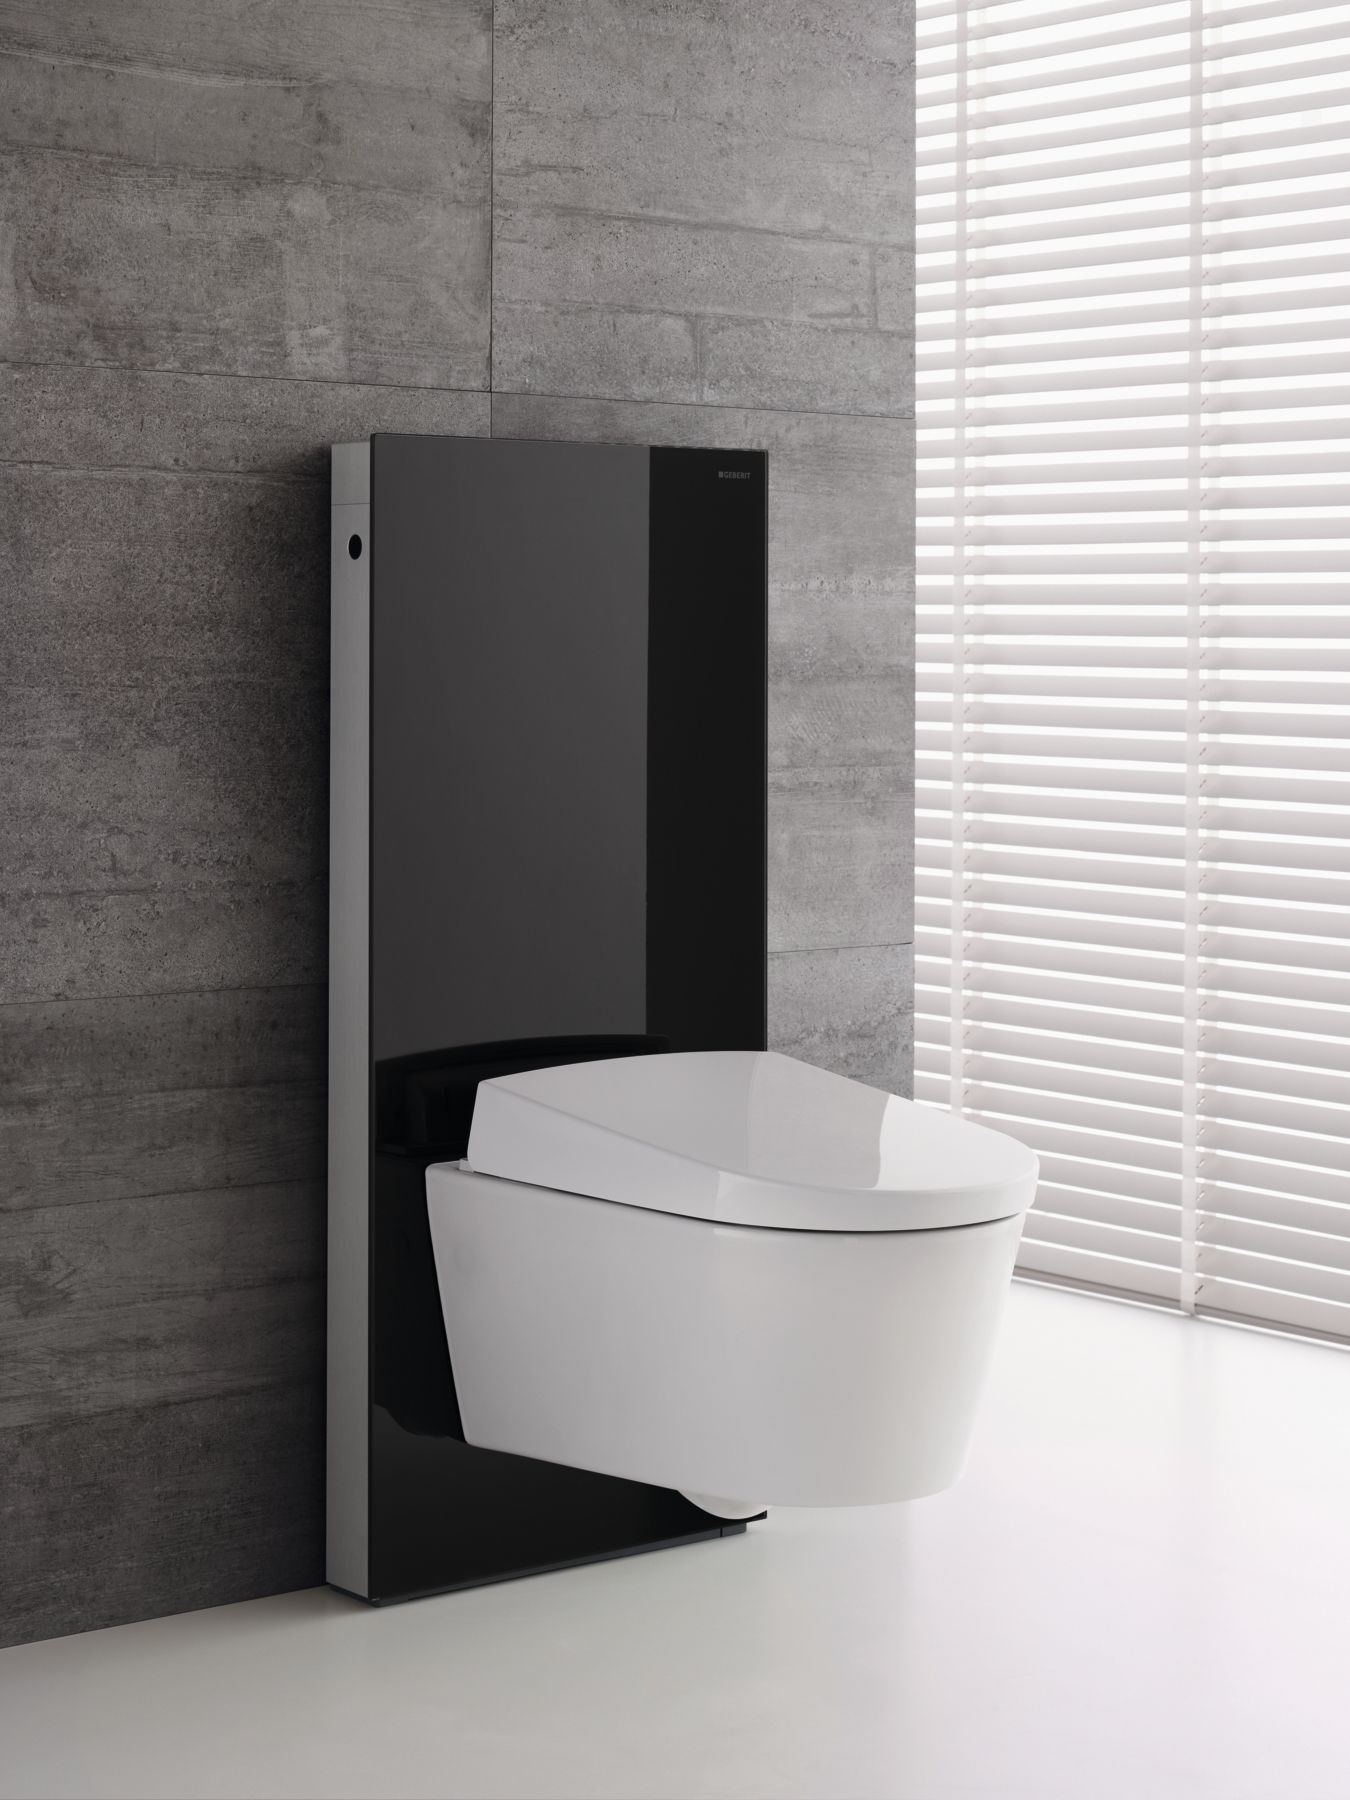 assistdata geberit aquaclean sela douche toilet from gloria mundi care aps. Black Bedroom Furniture Sets. Home Design Ideas